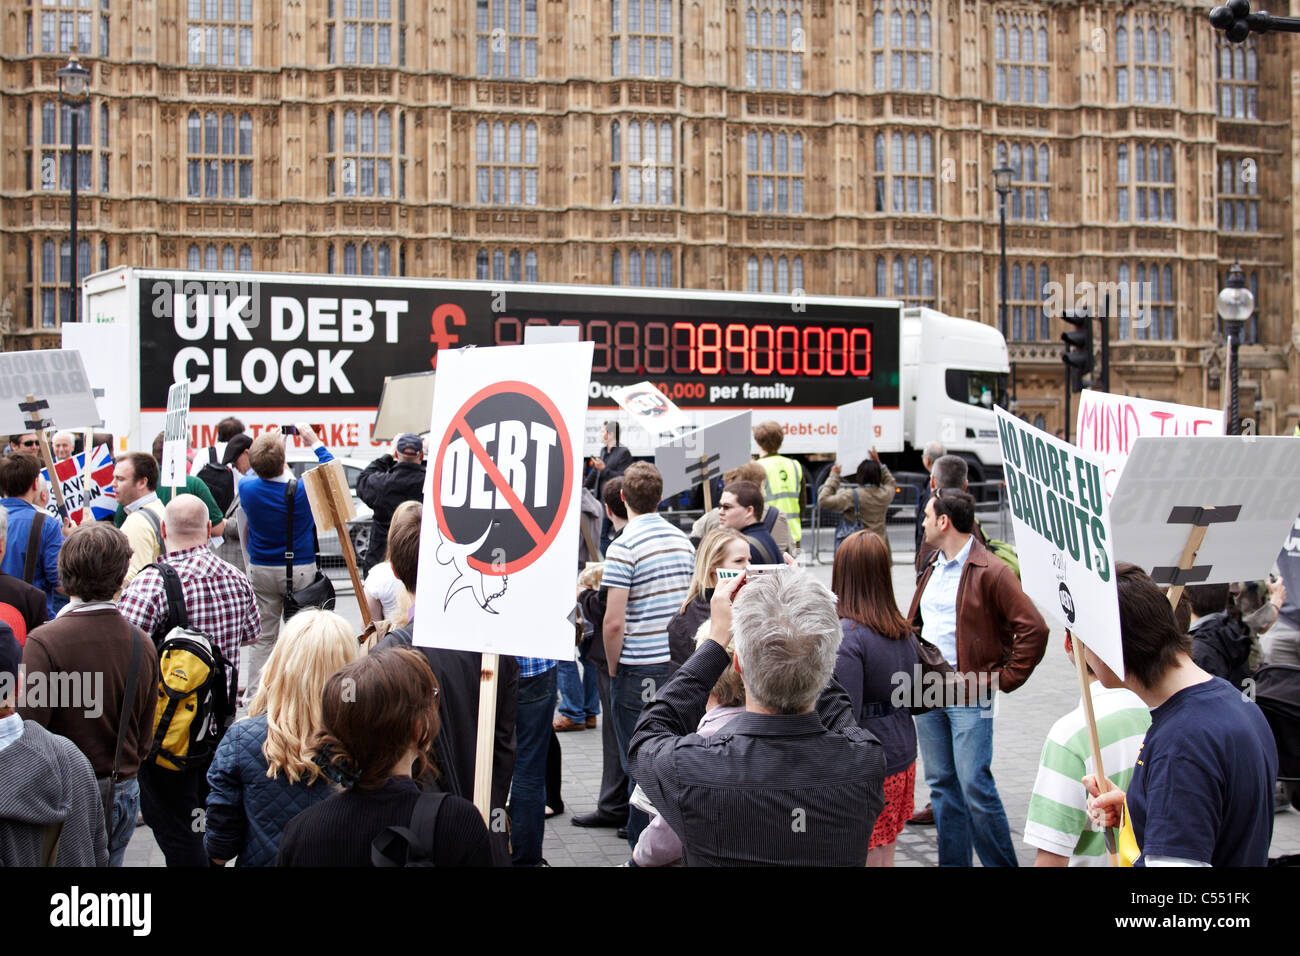 Around 250 people take part in a Rally Against Debt to call for greater public spending cuts to eliminate the UK - Stock Image